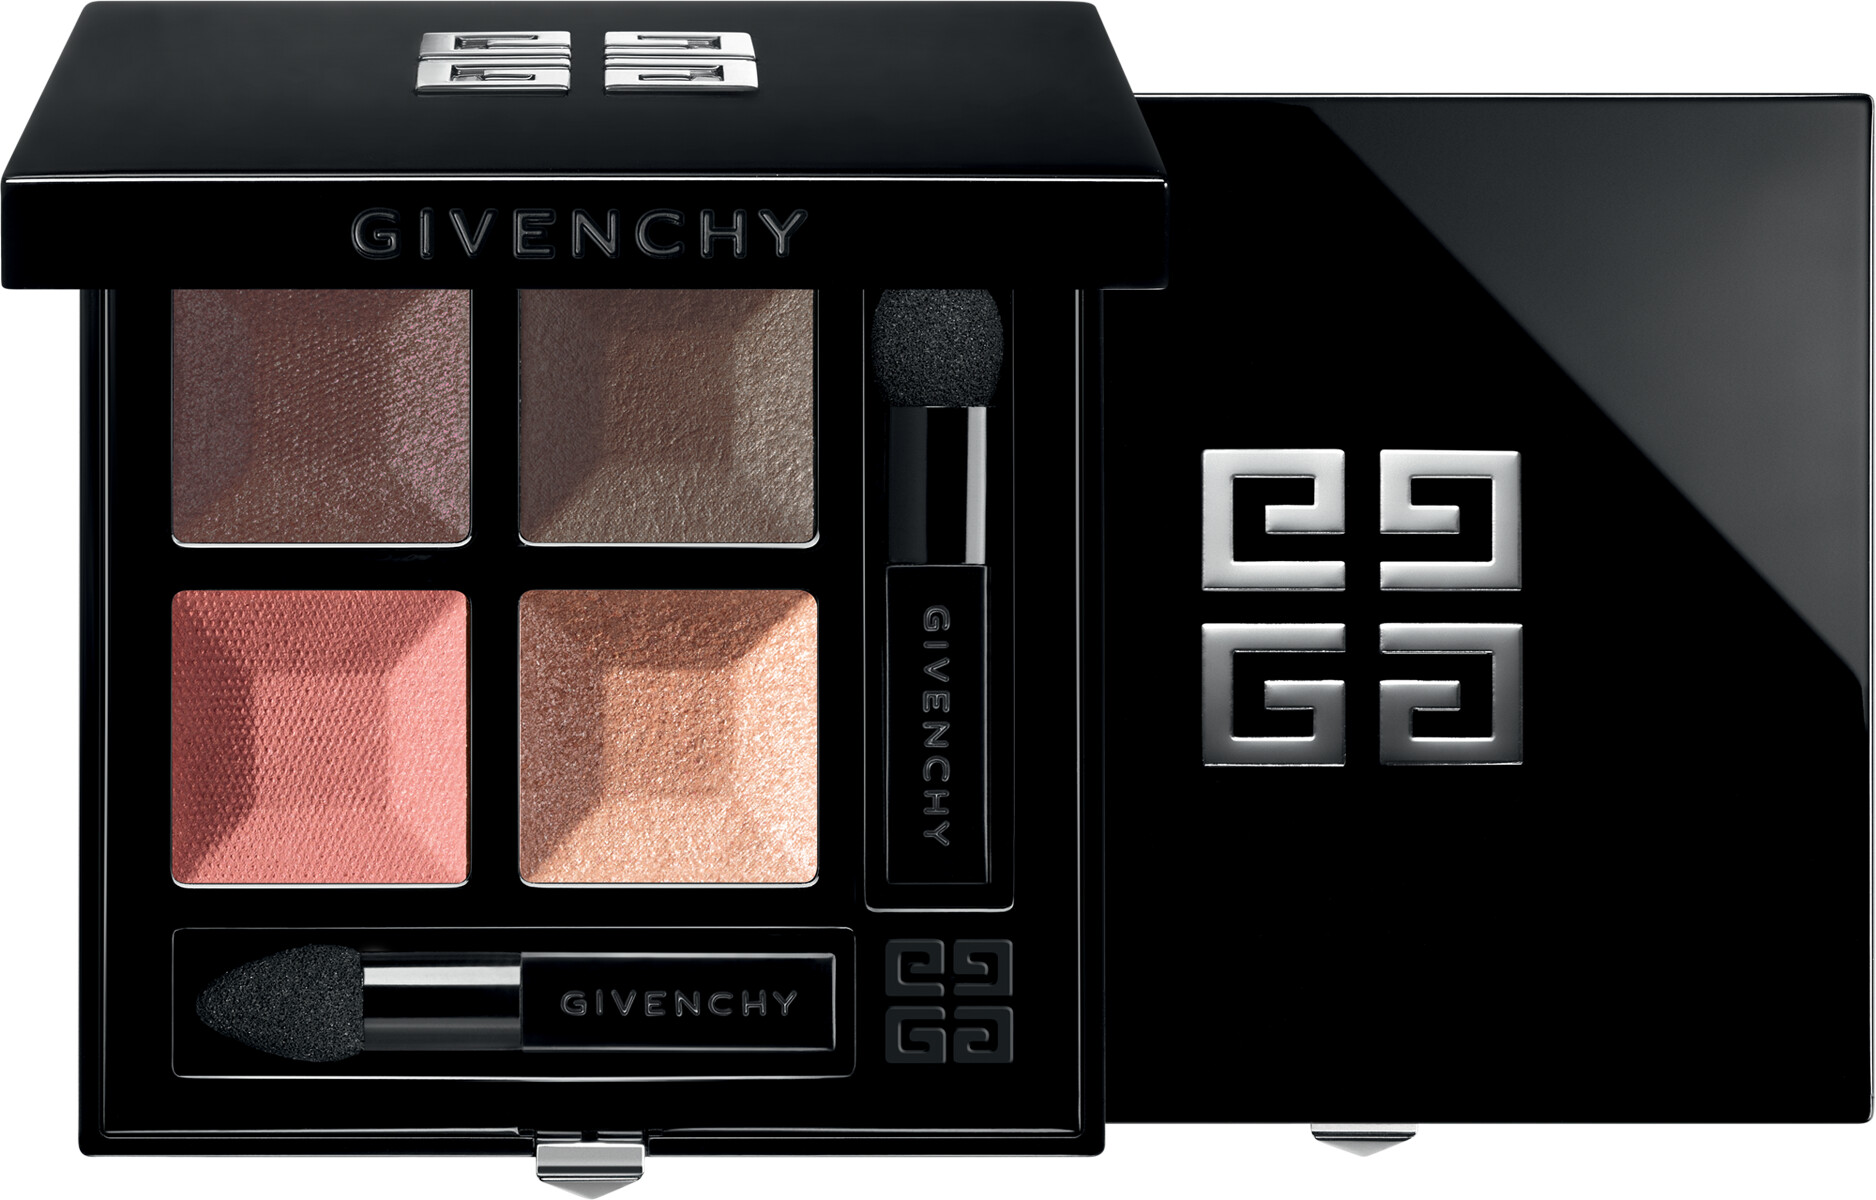 GIVENCHY Prisme Quatuor  Intense & Radiant Eyeshadow 4 Colors 4g 01  Caresse